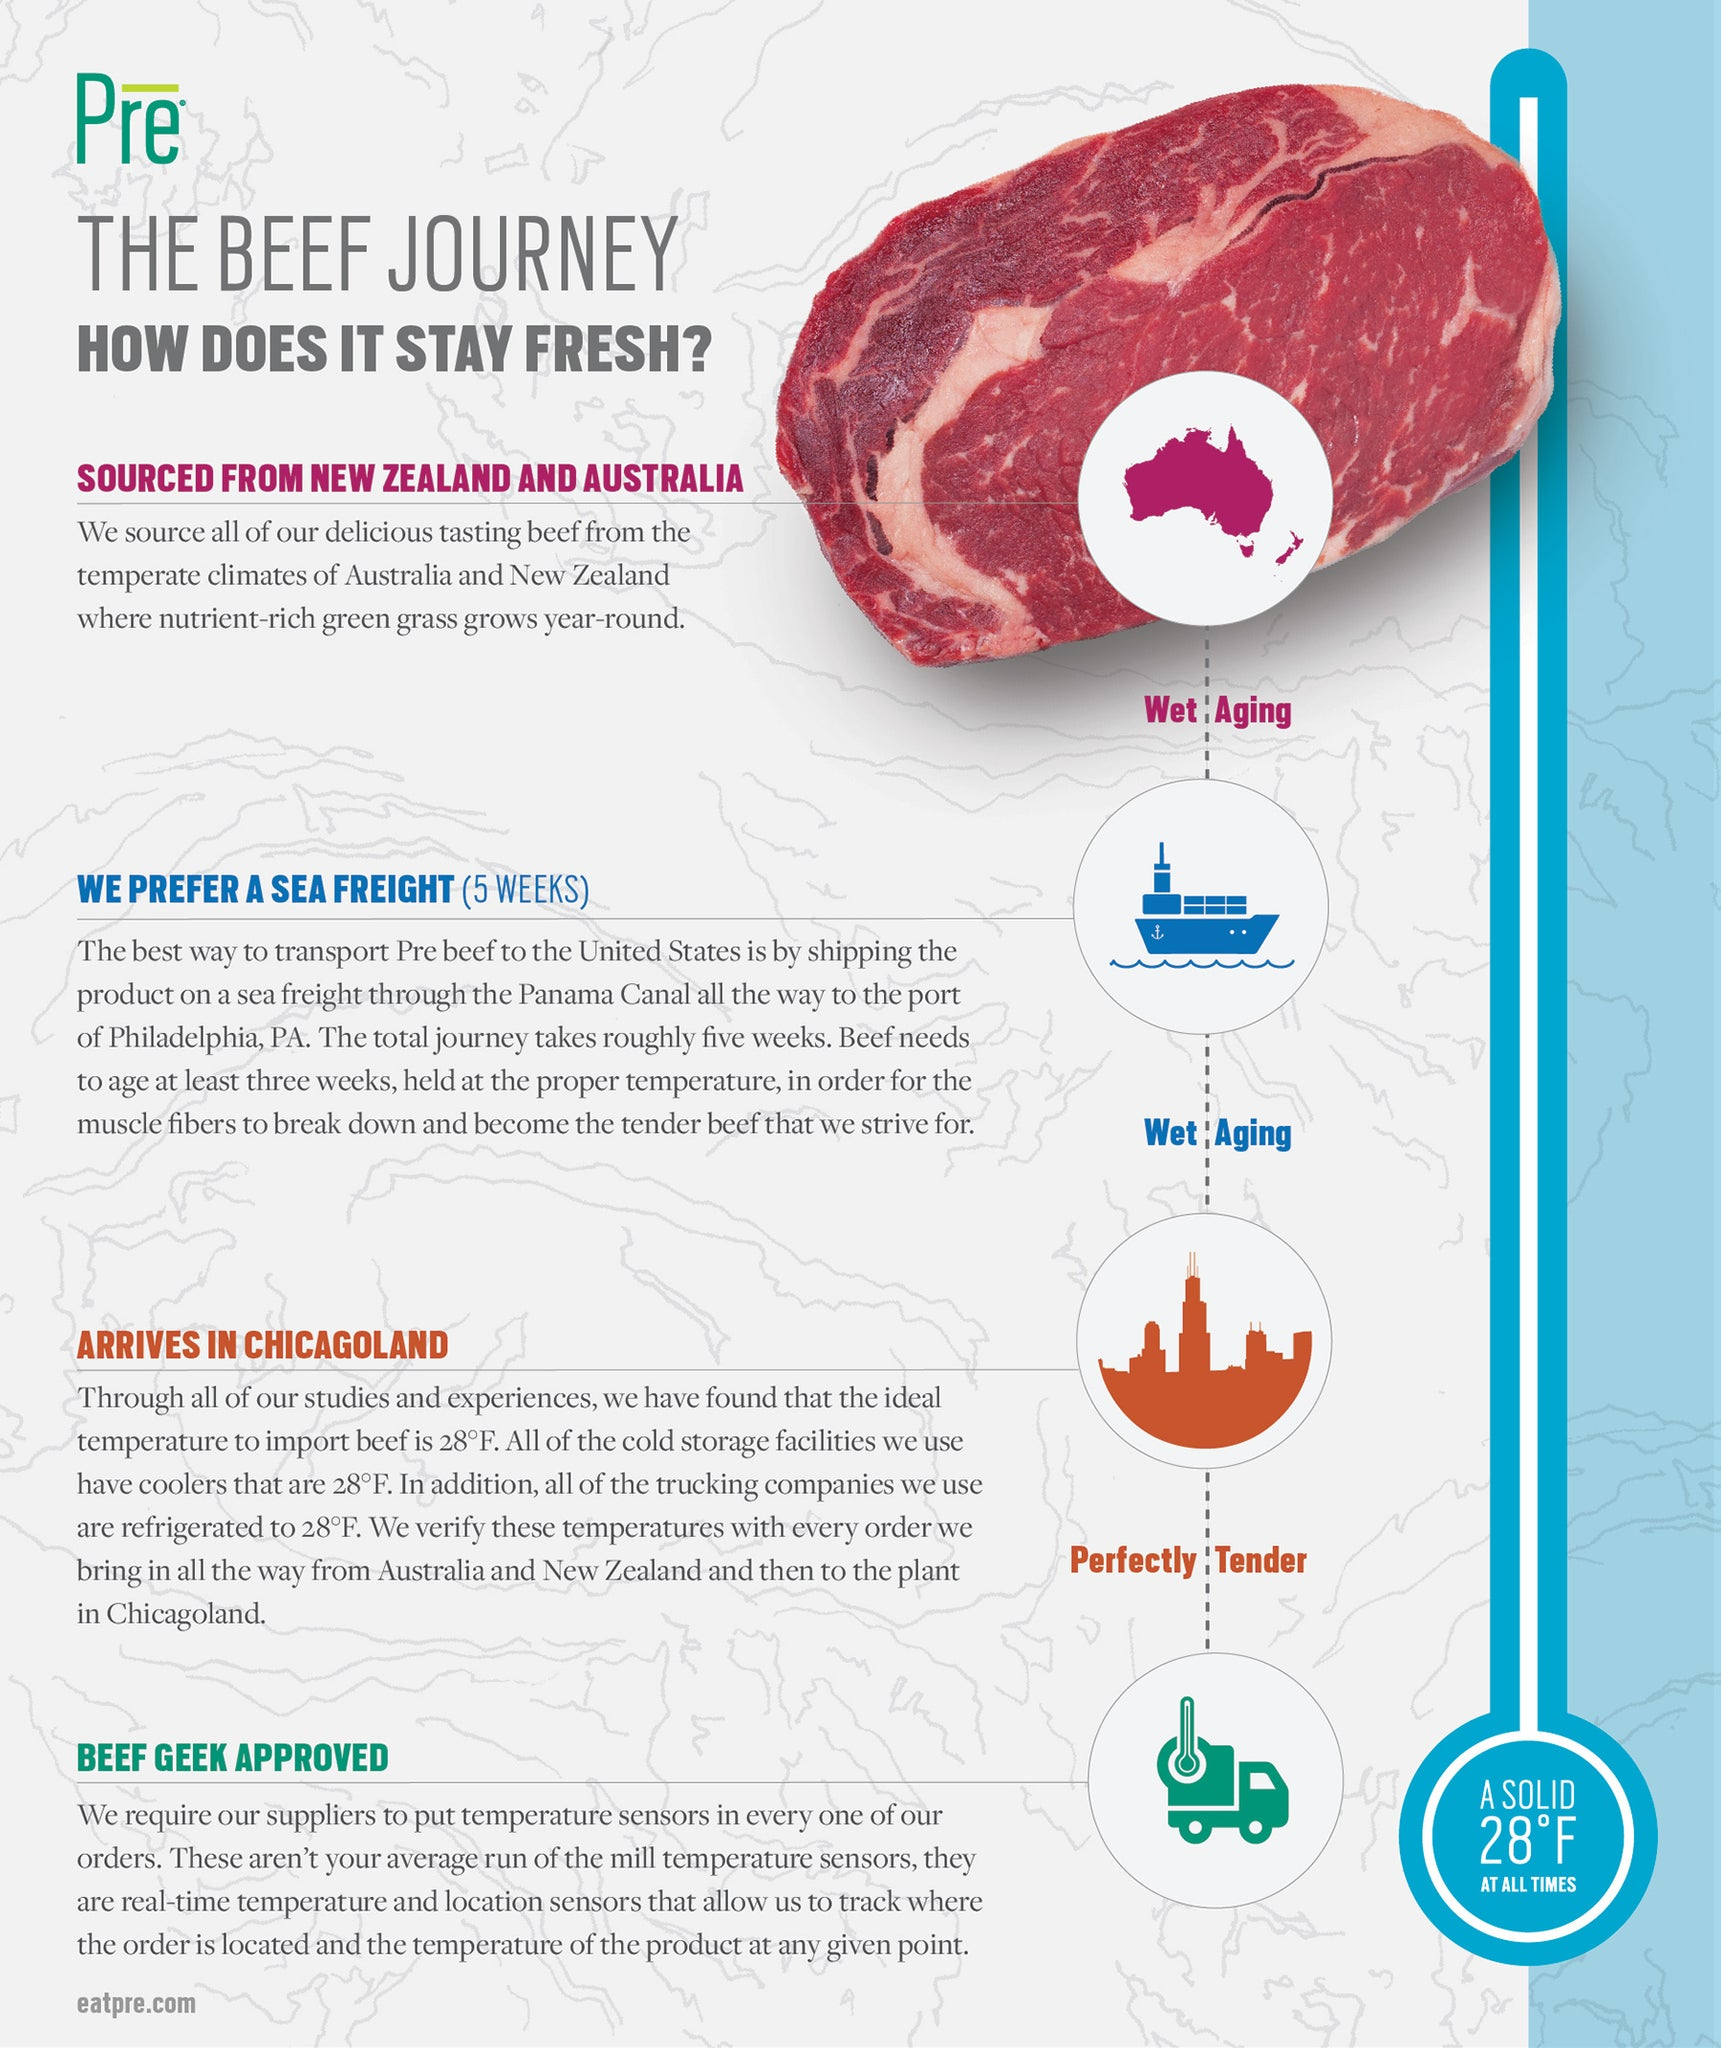 A supply chain graphic showing how the beef comes from New Zealand and Australia and goes to Chicago and stays fresh the entire time.